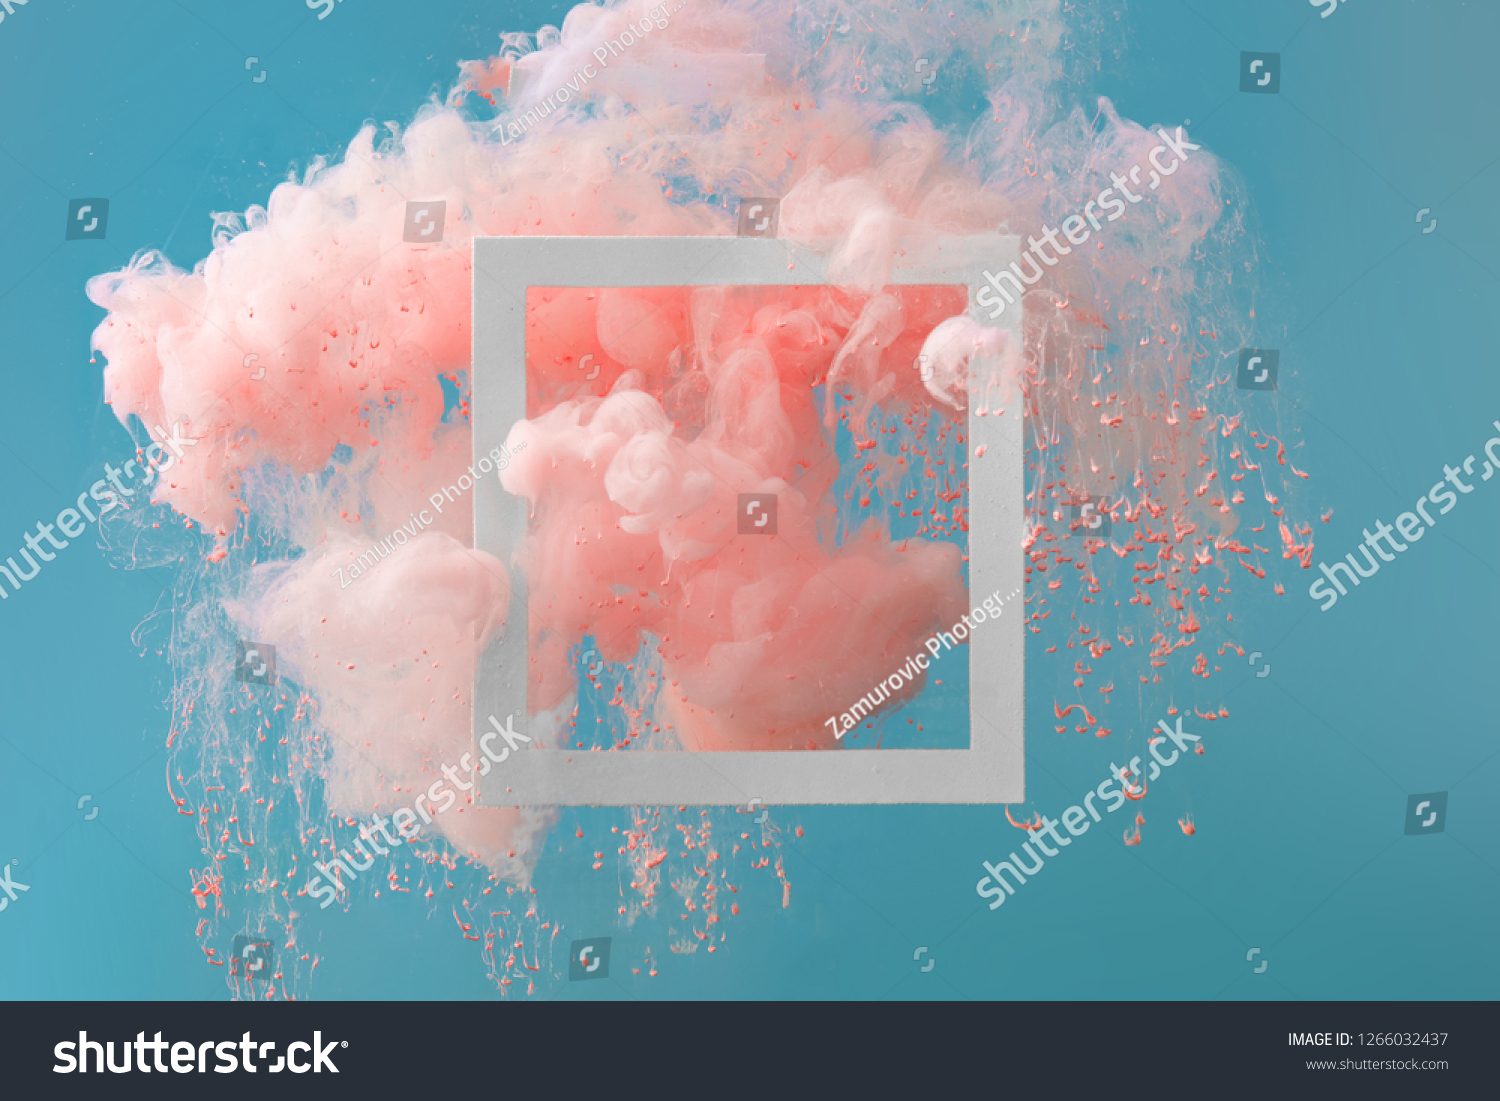 Abstract pastel coral pink color paint with pastel blue background. Fluid creative concept composition with copy space. Minimal natural luxury. #1266032437